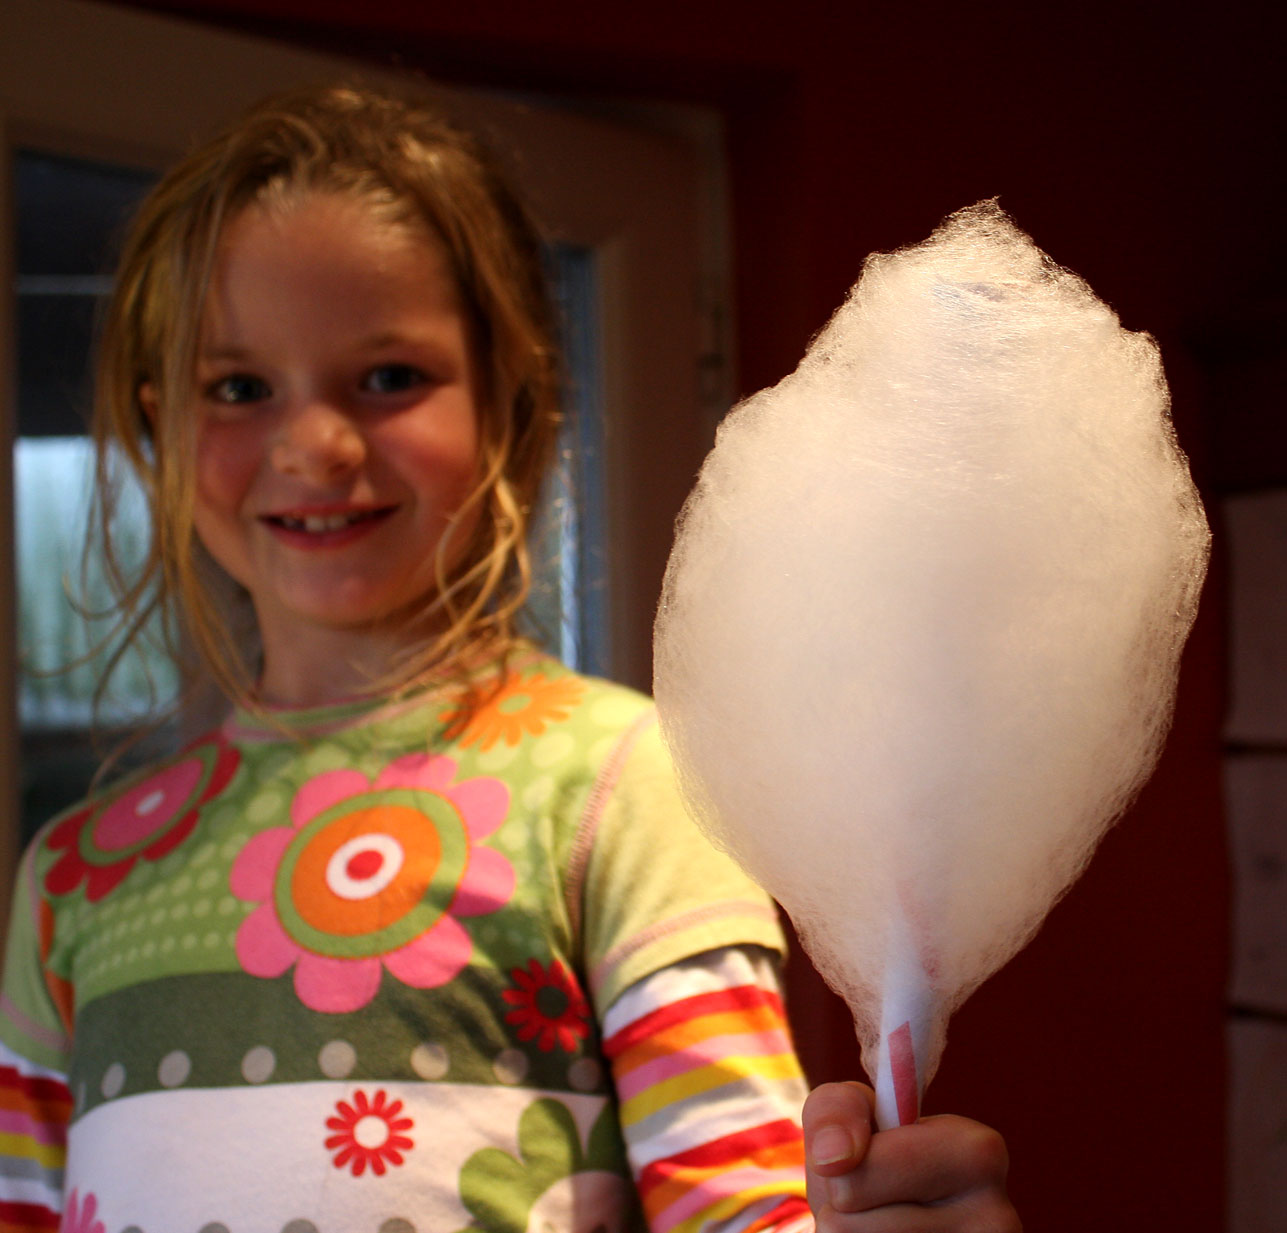 holding candyfloss